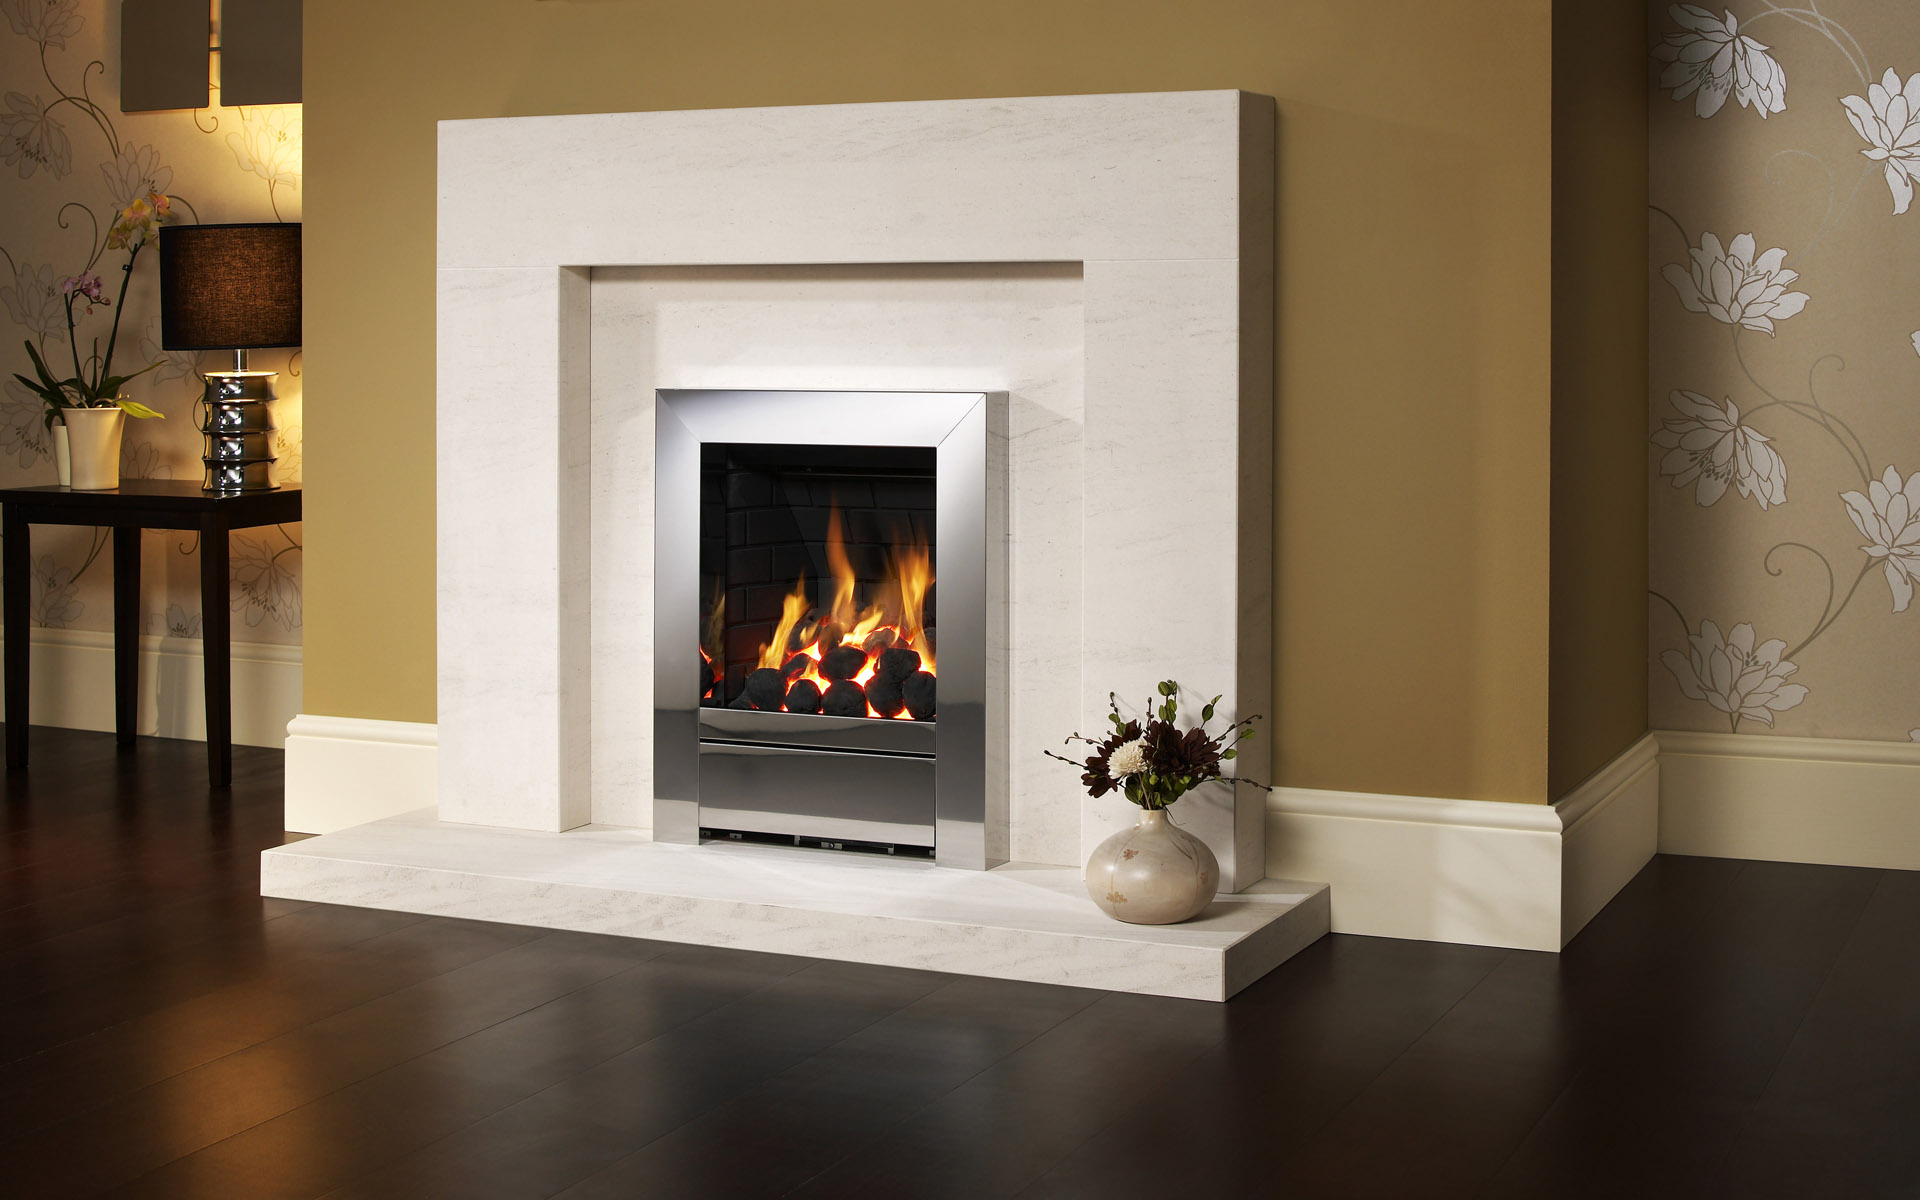 Western-style home fireplace 23096